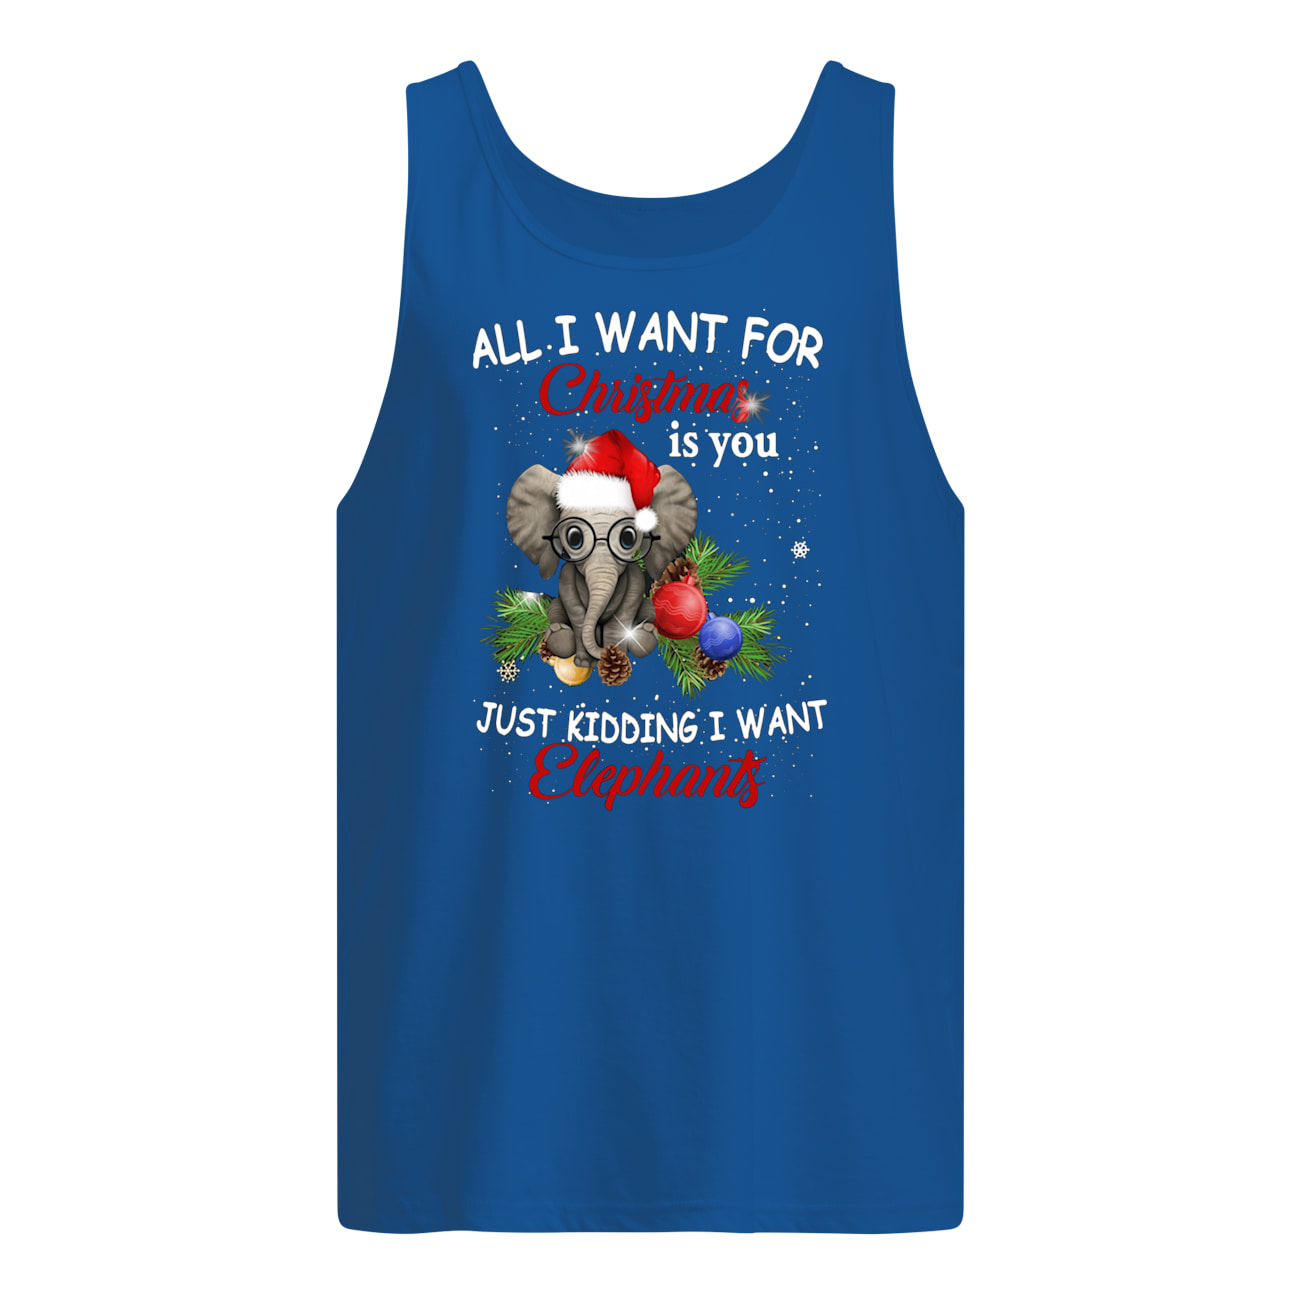 All i want for christmas is you just kidding i want elephant tank top